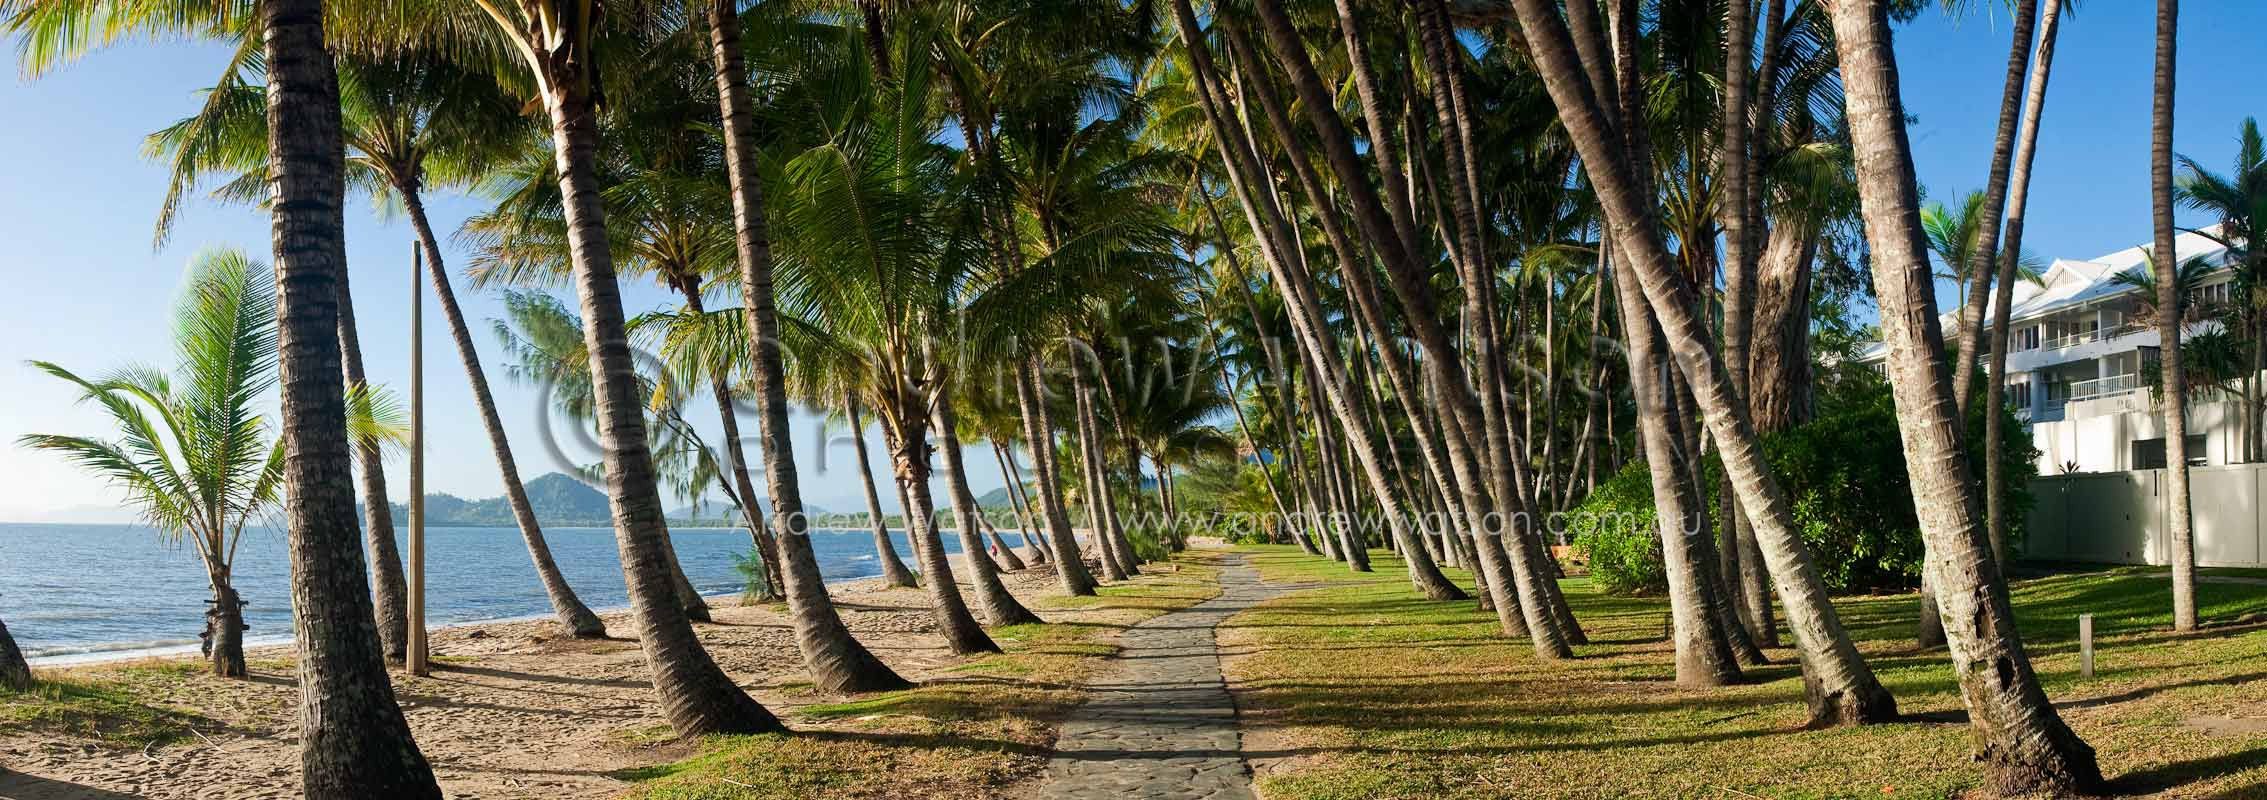 Coconut palms line the beach at Palm CoveCairns, North QueenslandImage available for licensing or as a fine-art print... please enquire